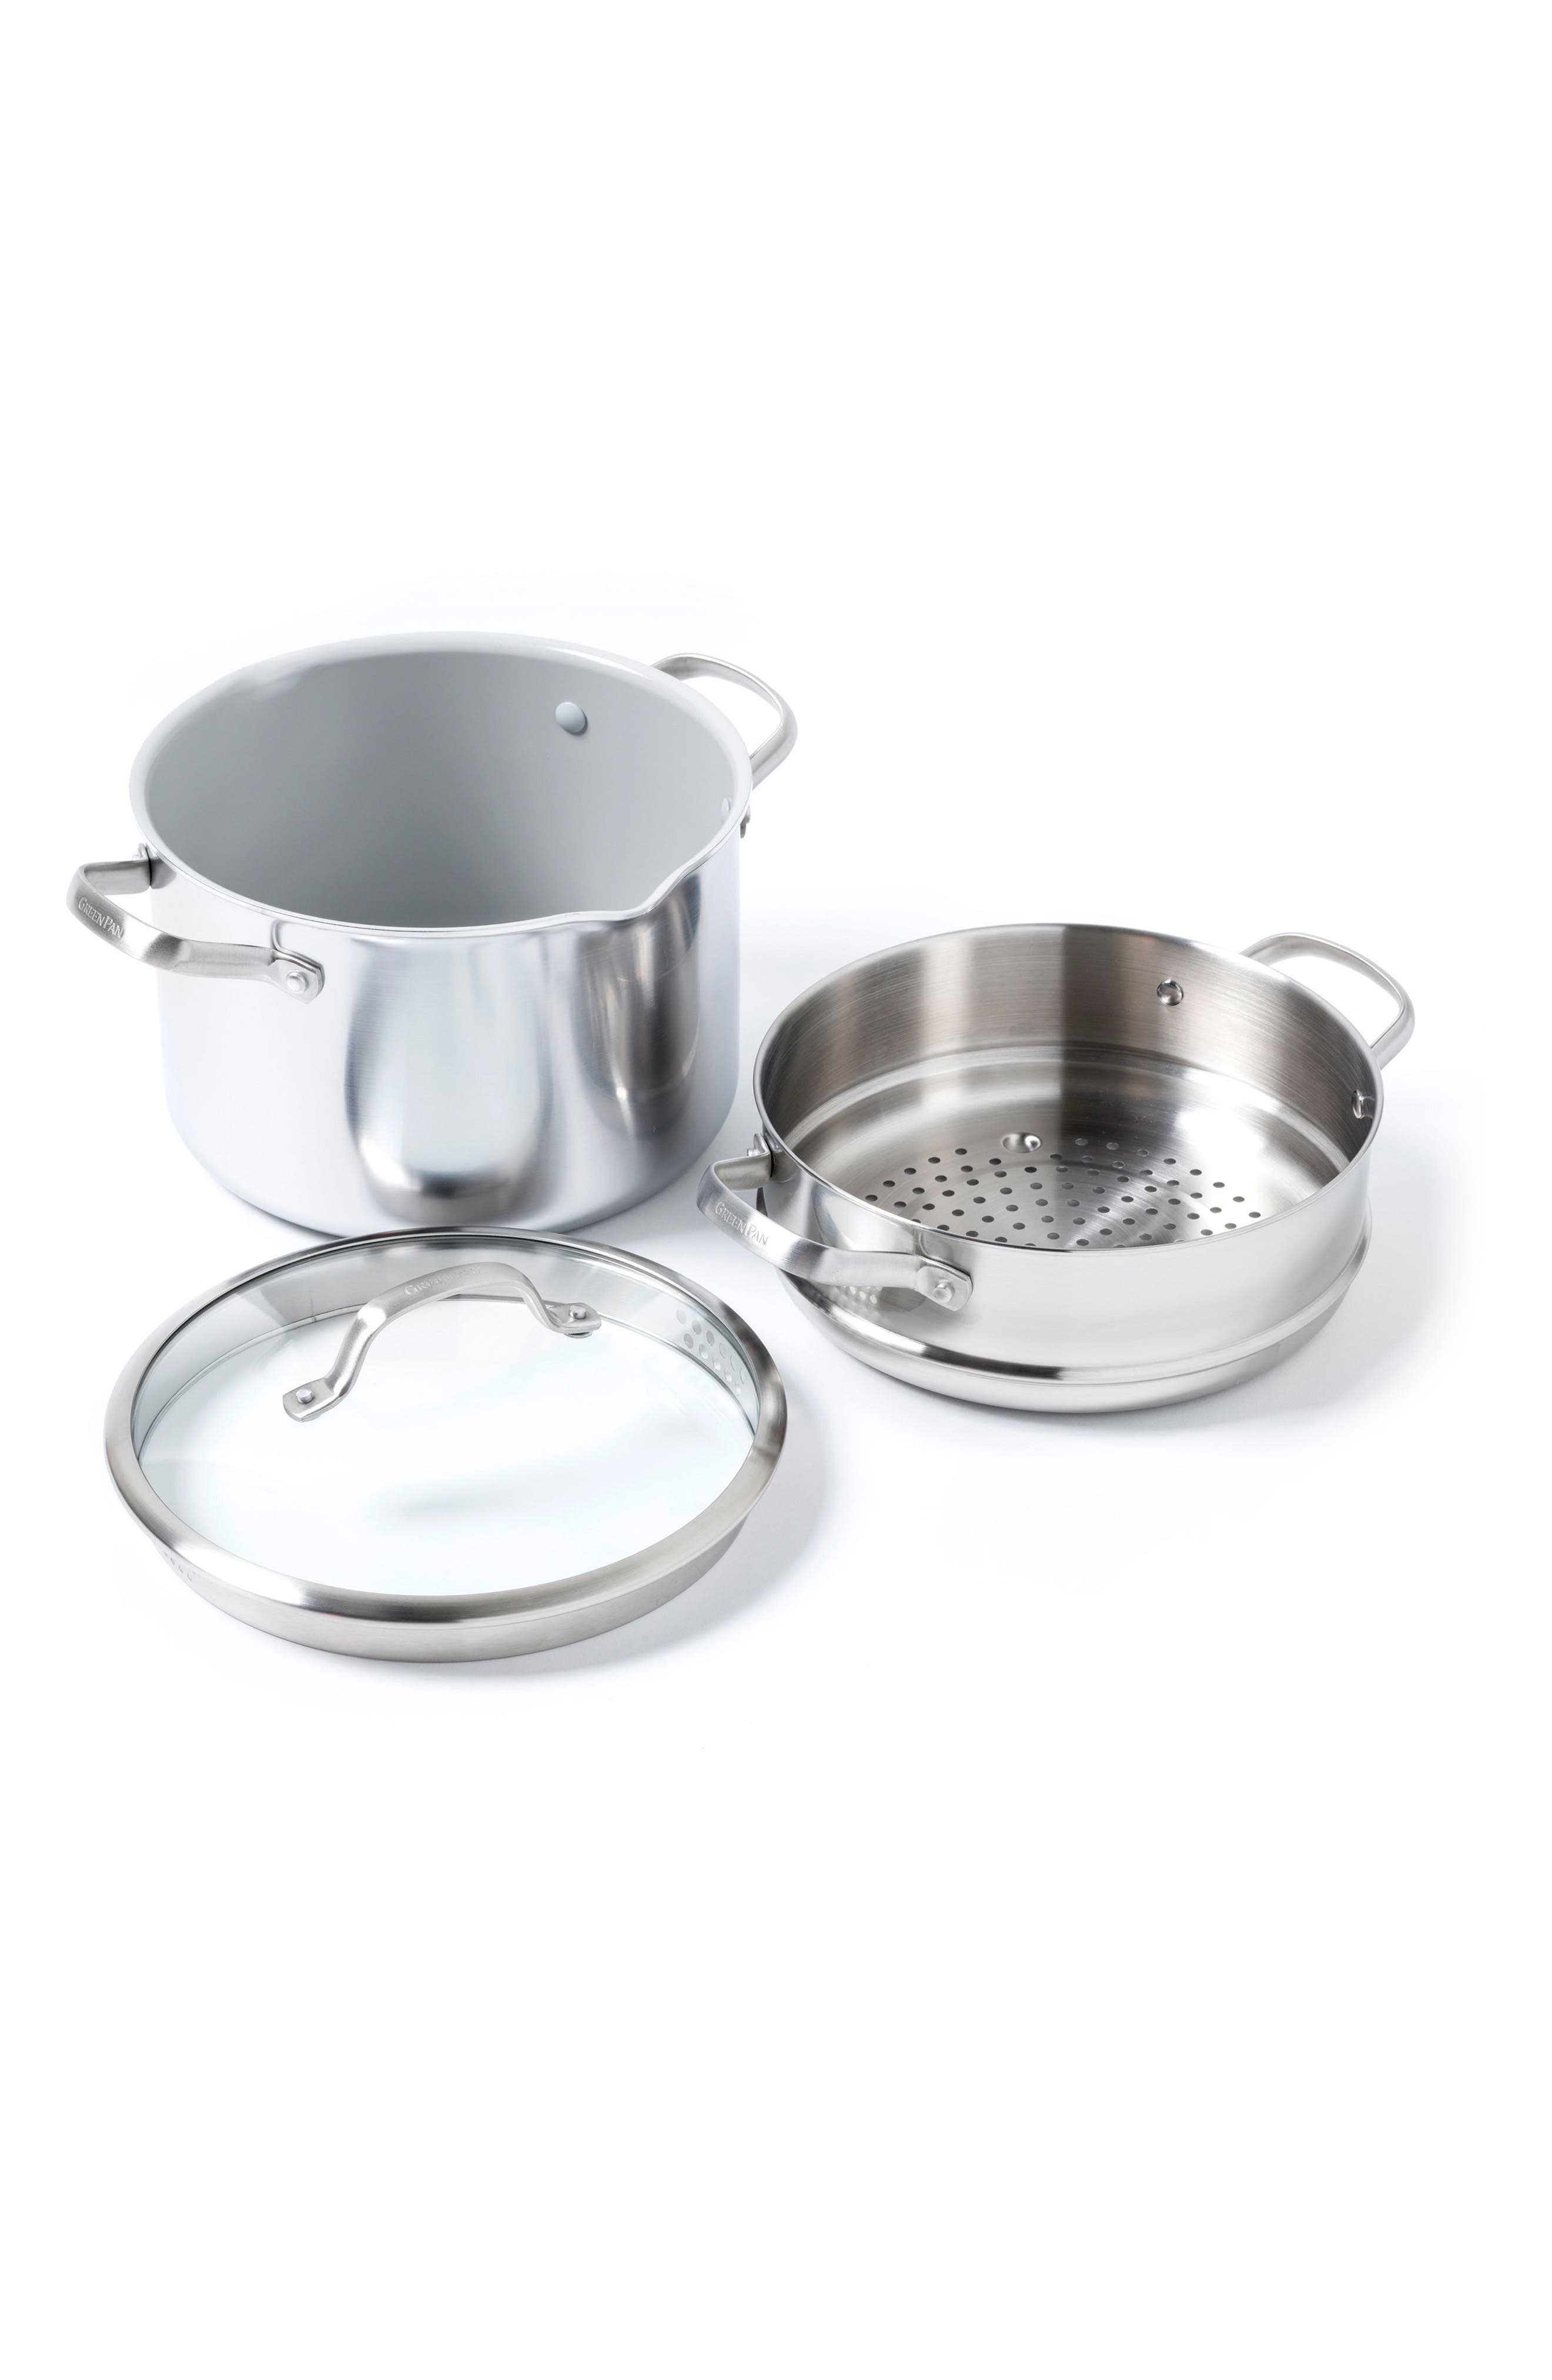 Venice Pro 8-Quart Multilayer Stainless Steel Ceramic Nonstick Stock Pot with Steamer Inset & Glass Lid,                         Main,                         color, Stainless Steel